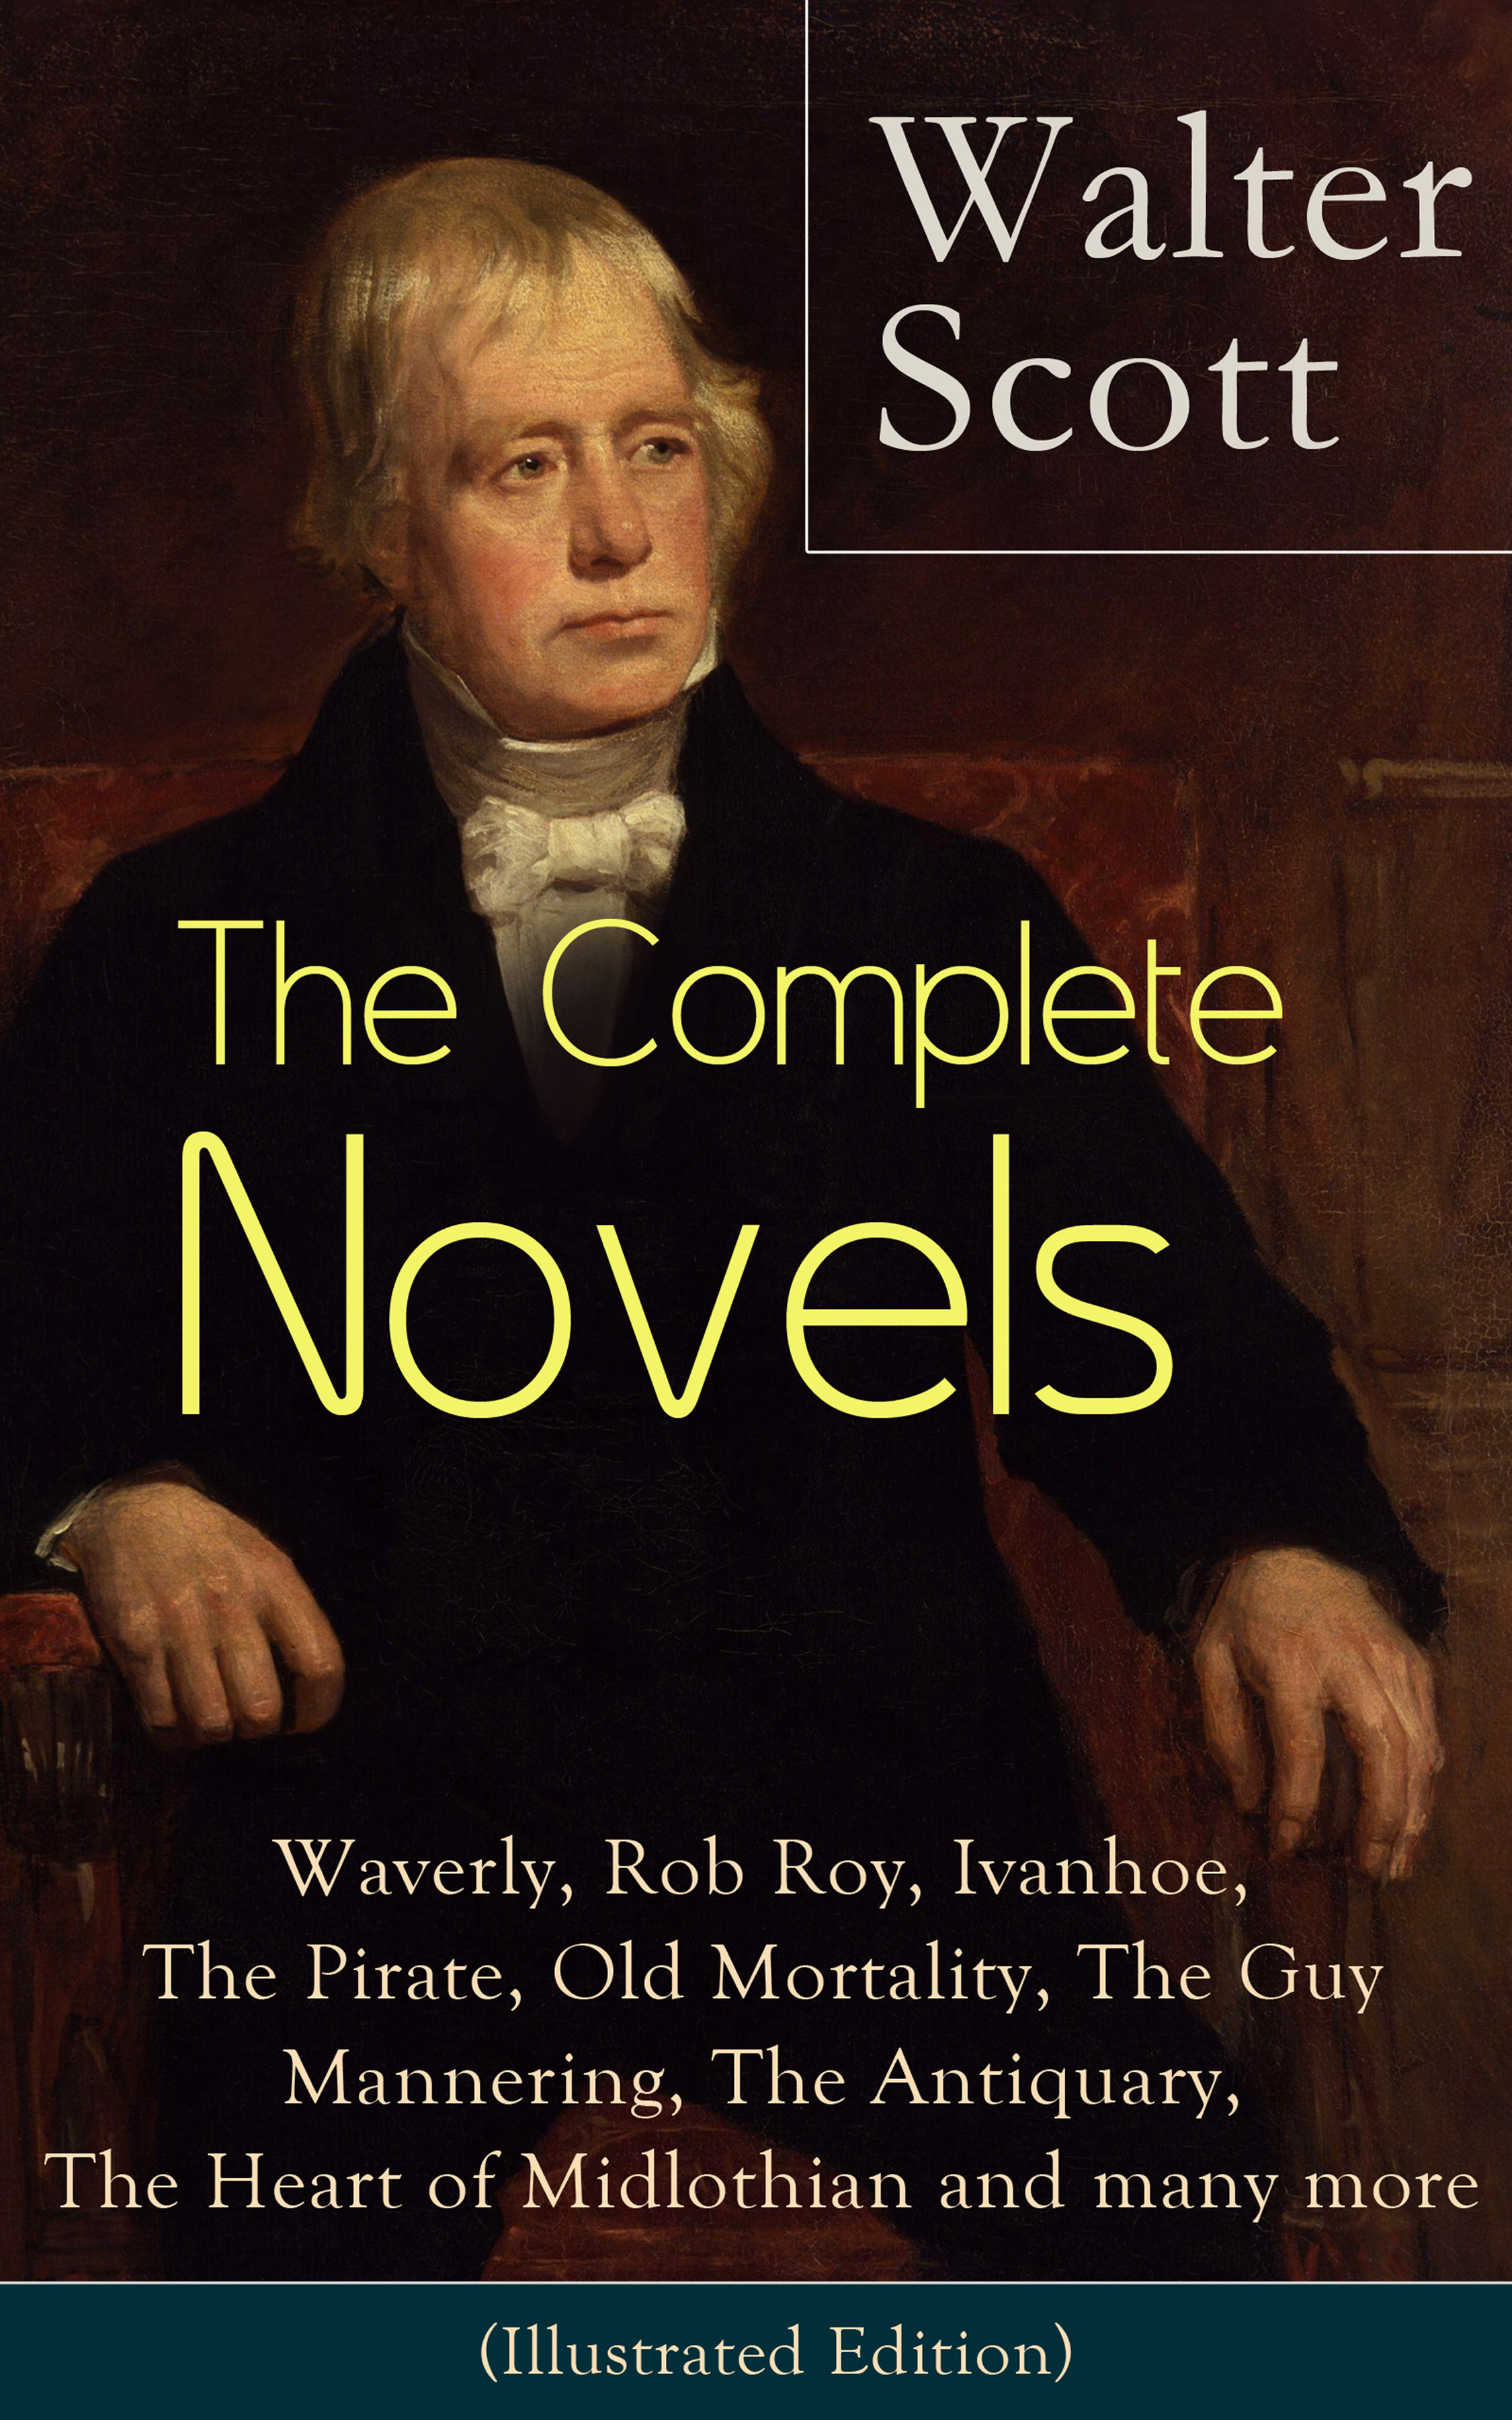 The Complete Novels of Sir Walter Scott: Waverly, Rob Roy, Ivanhoe, The Pirate, Old Mortality, The Guy Mannering, The Antiquary, The Heart of Midlothian and many more (Illustrated Edition)